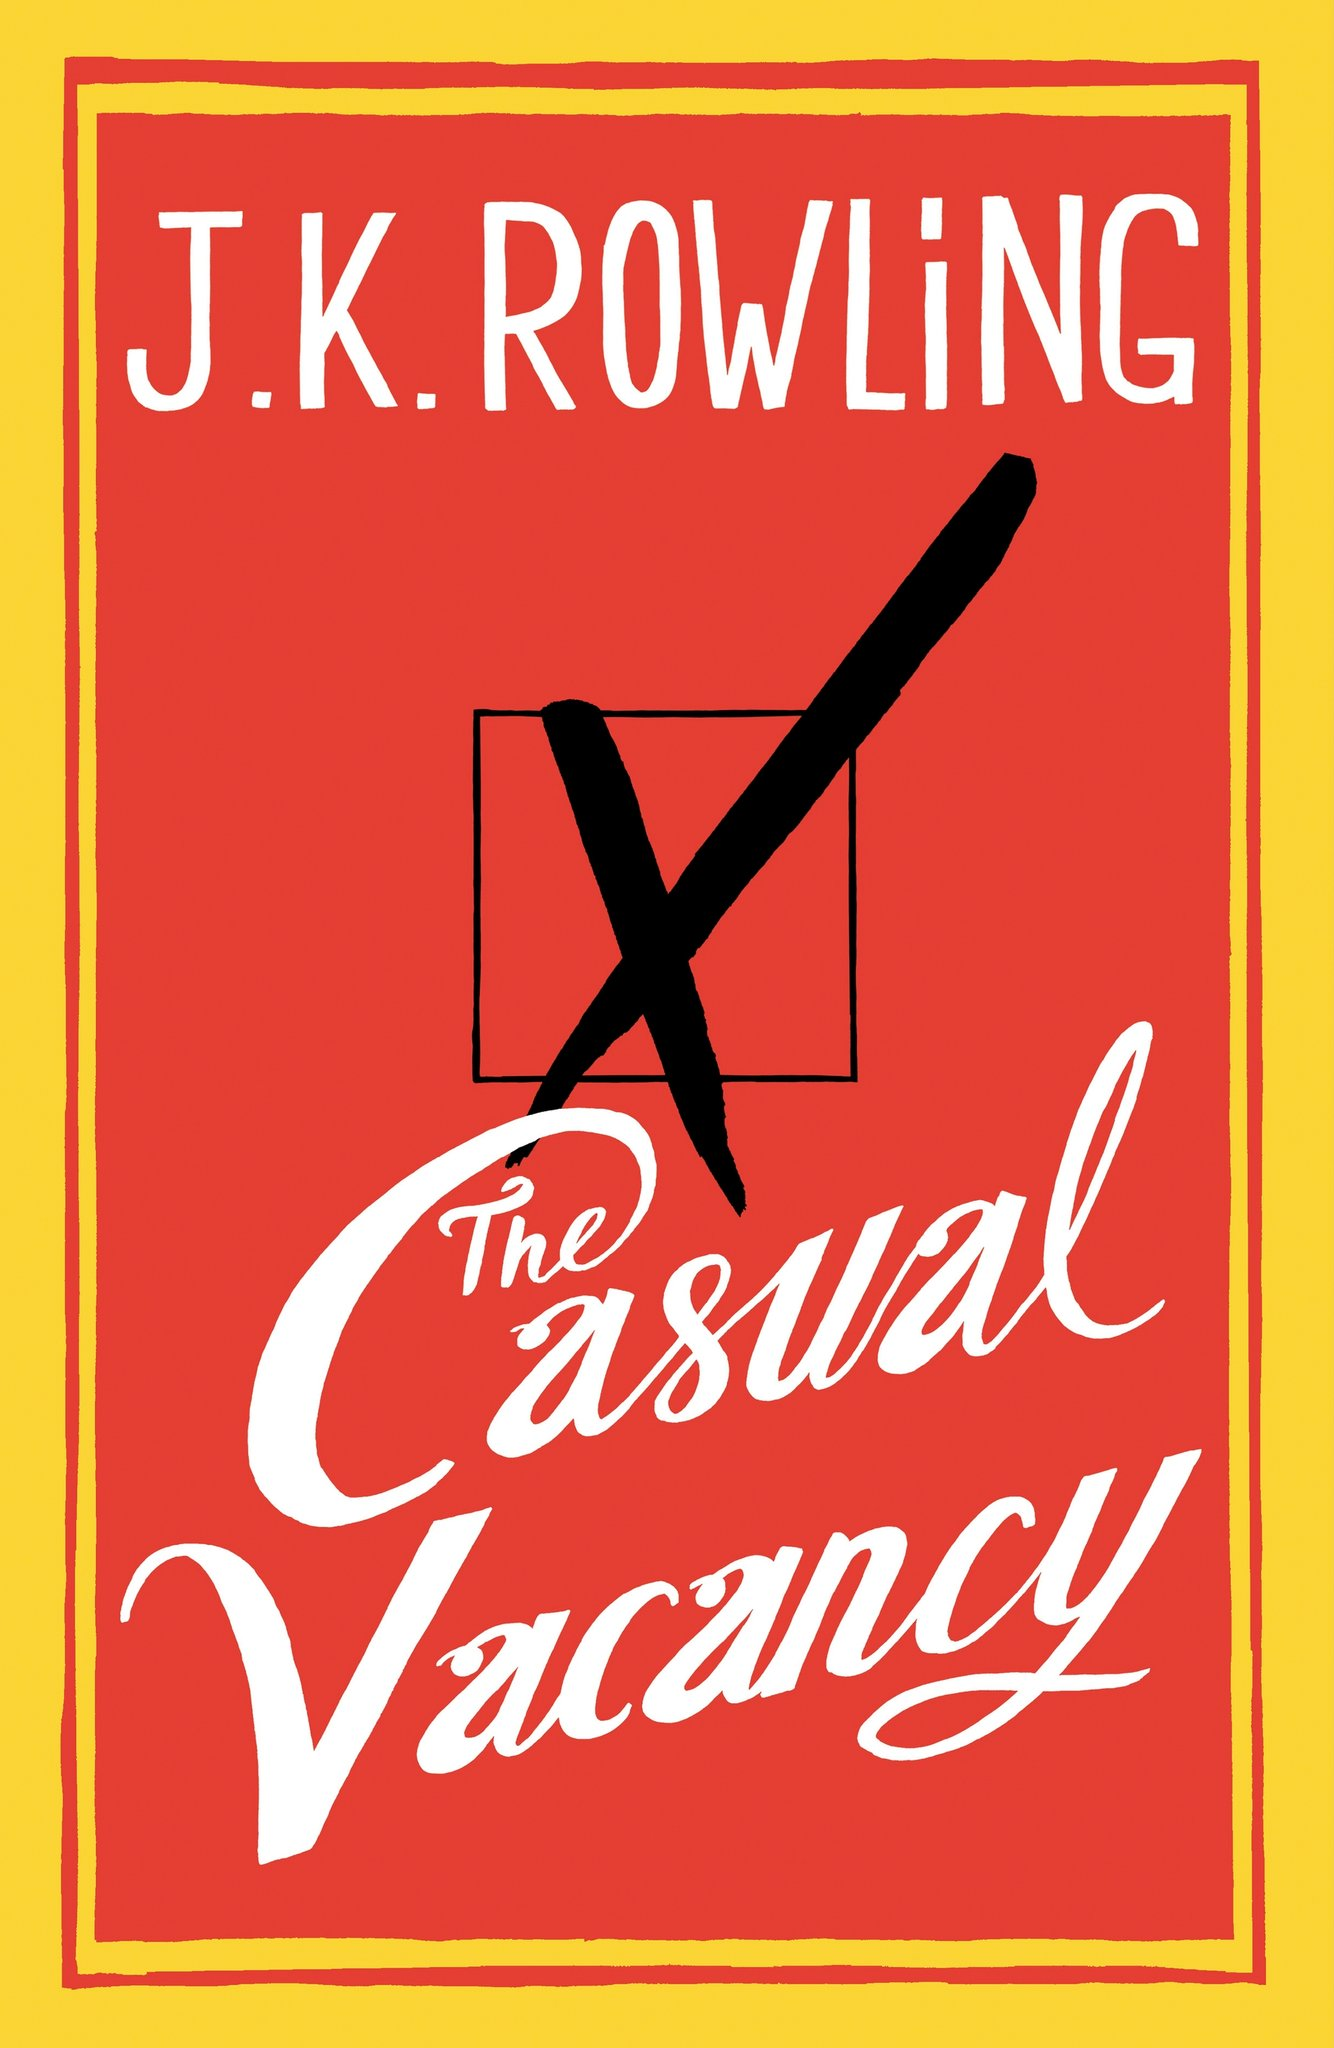 J. K. Rowling Livres : rowling, livres, Review:, Casual, Vacancy', Rowling, Times